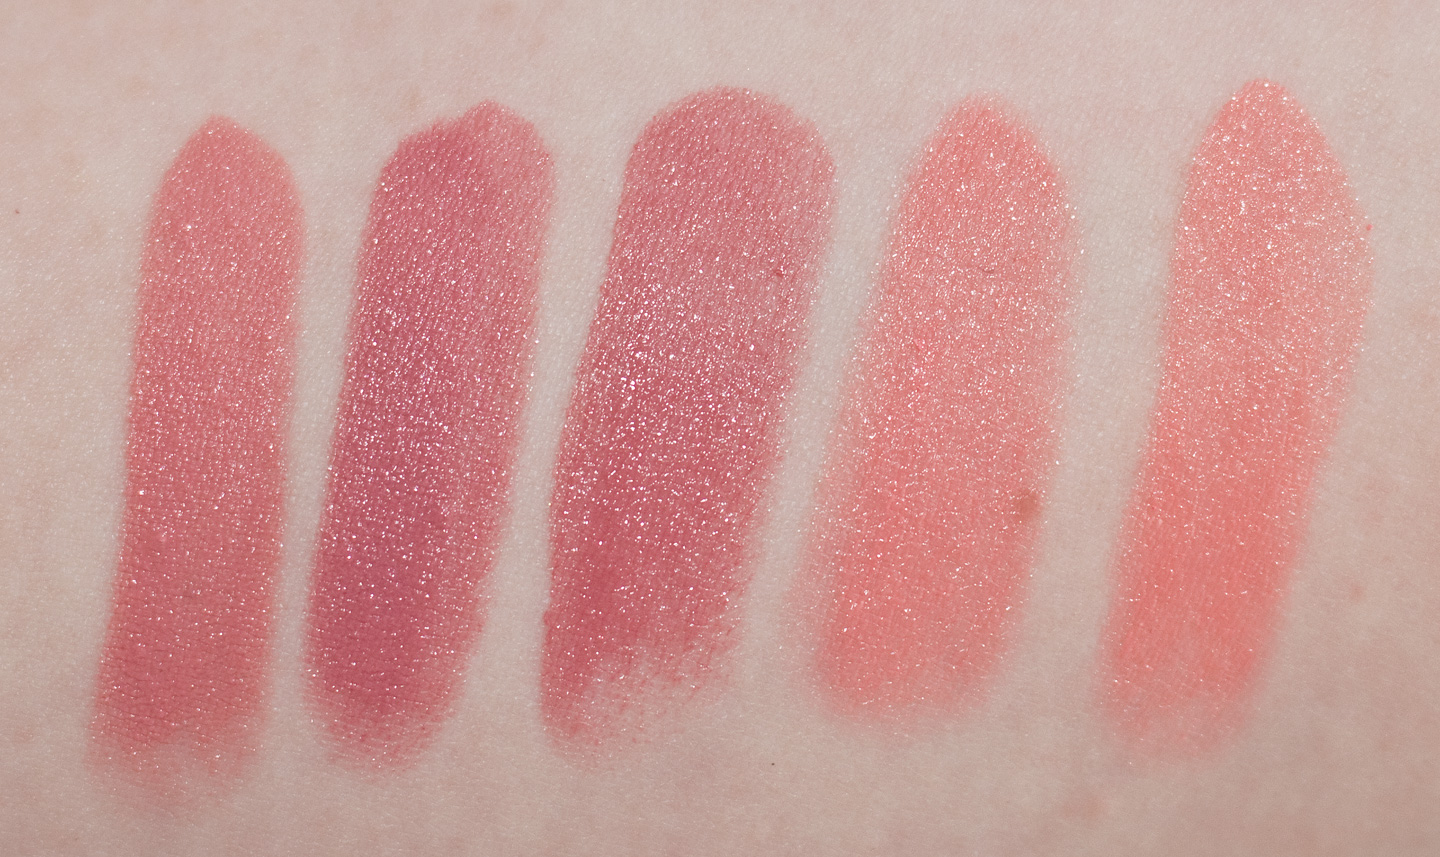 Dare_to_Compare_Urban_Decay_Vice_lipsticks_Weirdo_Unicorn_Coral_Pink_ColourPop_Maybelline_NYX_MAC_19